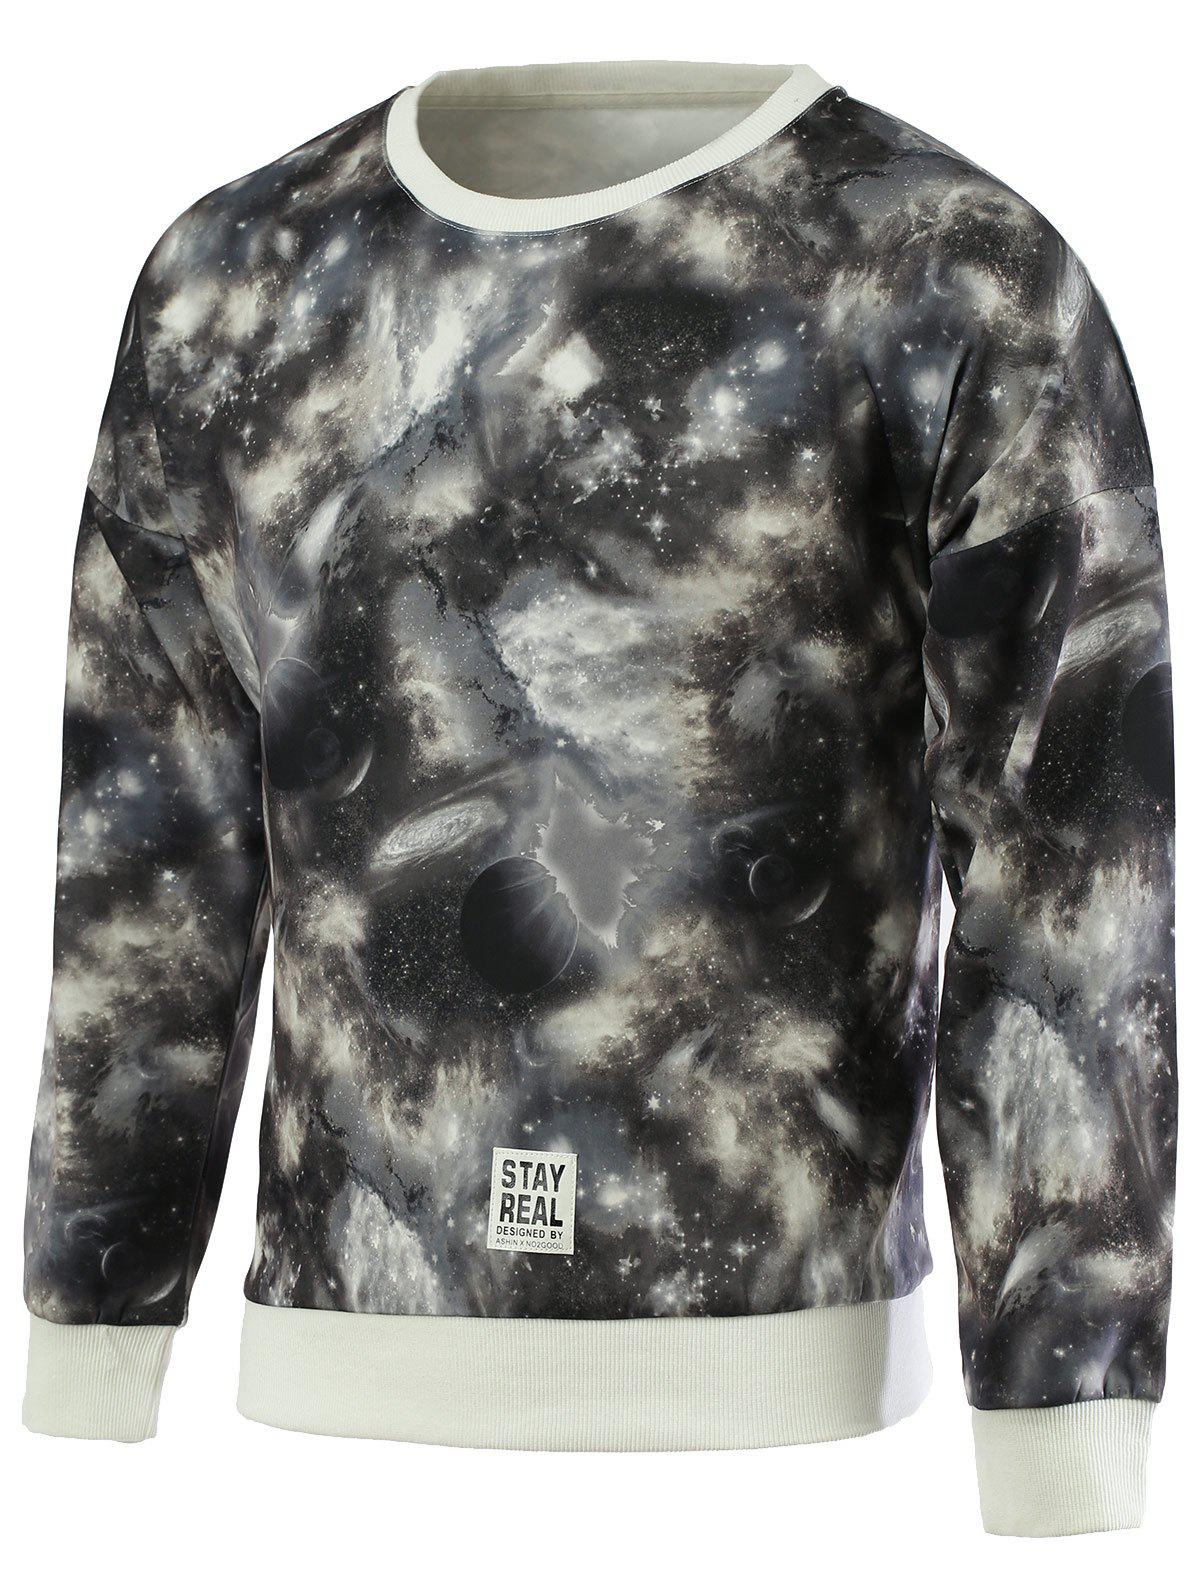 Fashionable Galaxy Print Round Neck Long Sleeves Sweatshirt For Men - COLORMIX 2XL